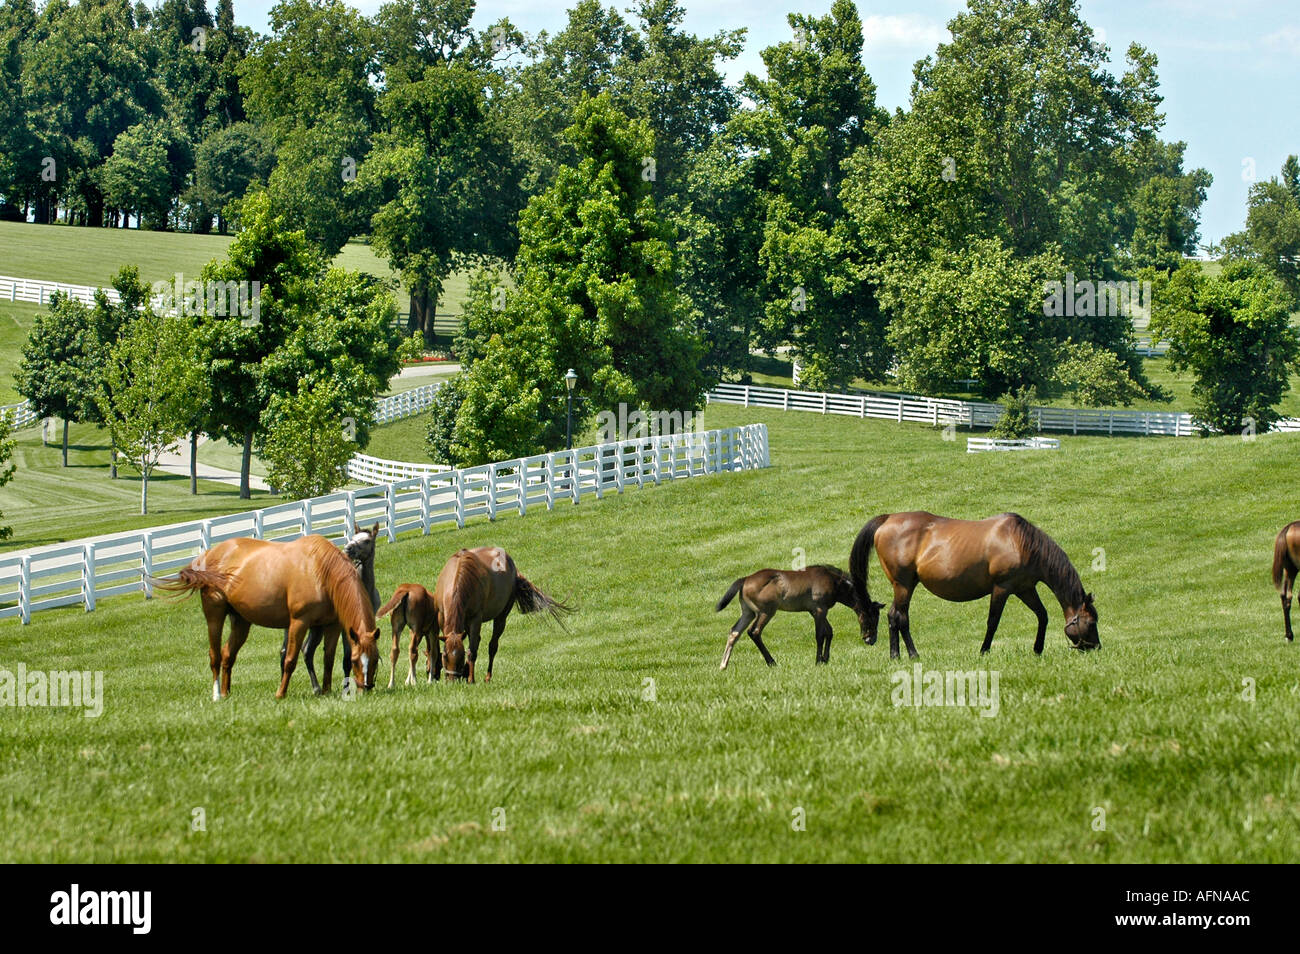 Image result for Horse Farm